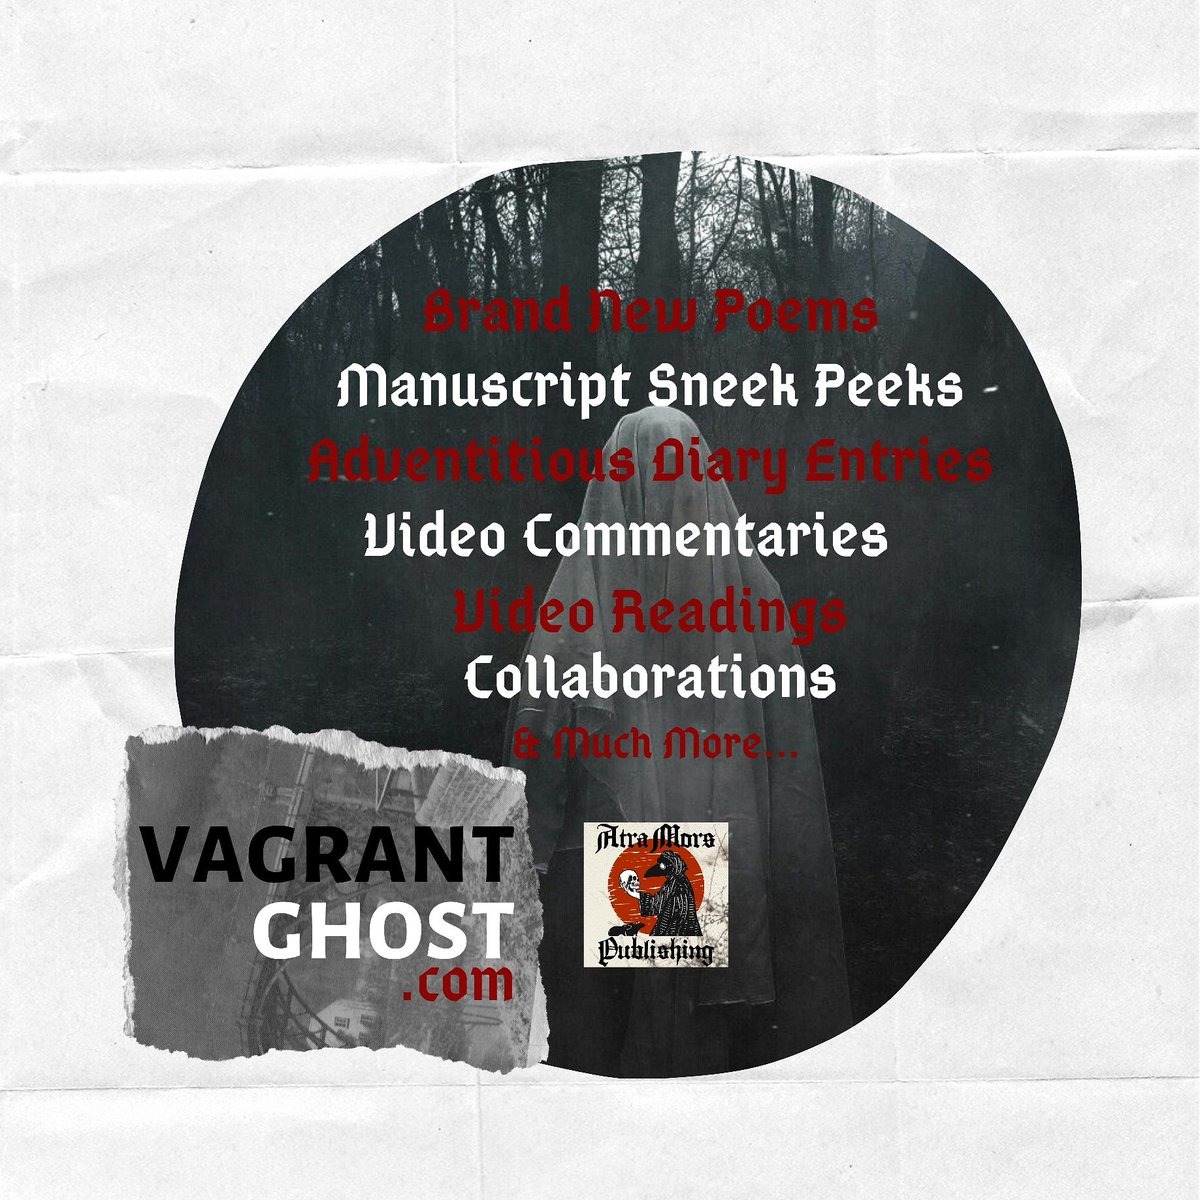 2020 has been interesting thus far, but soon it's about to be out of control. http://VagrantGhost.com  coming soon! #Reading #Death  #WritersOfInstagram #Poetry #poetryworld #artofpoets #poemgasm #poemsbyme #spilledinkpoetry #wordgasms #writinginspiration #poetslife #VagrantGhostpic.twitter.com/O5MyWWmqH8